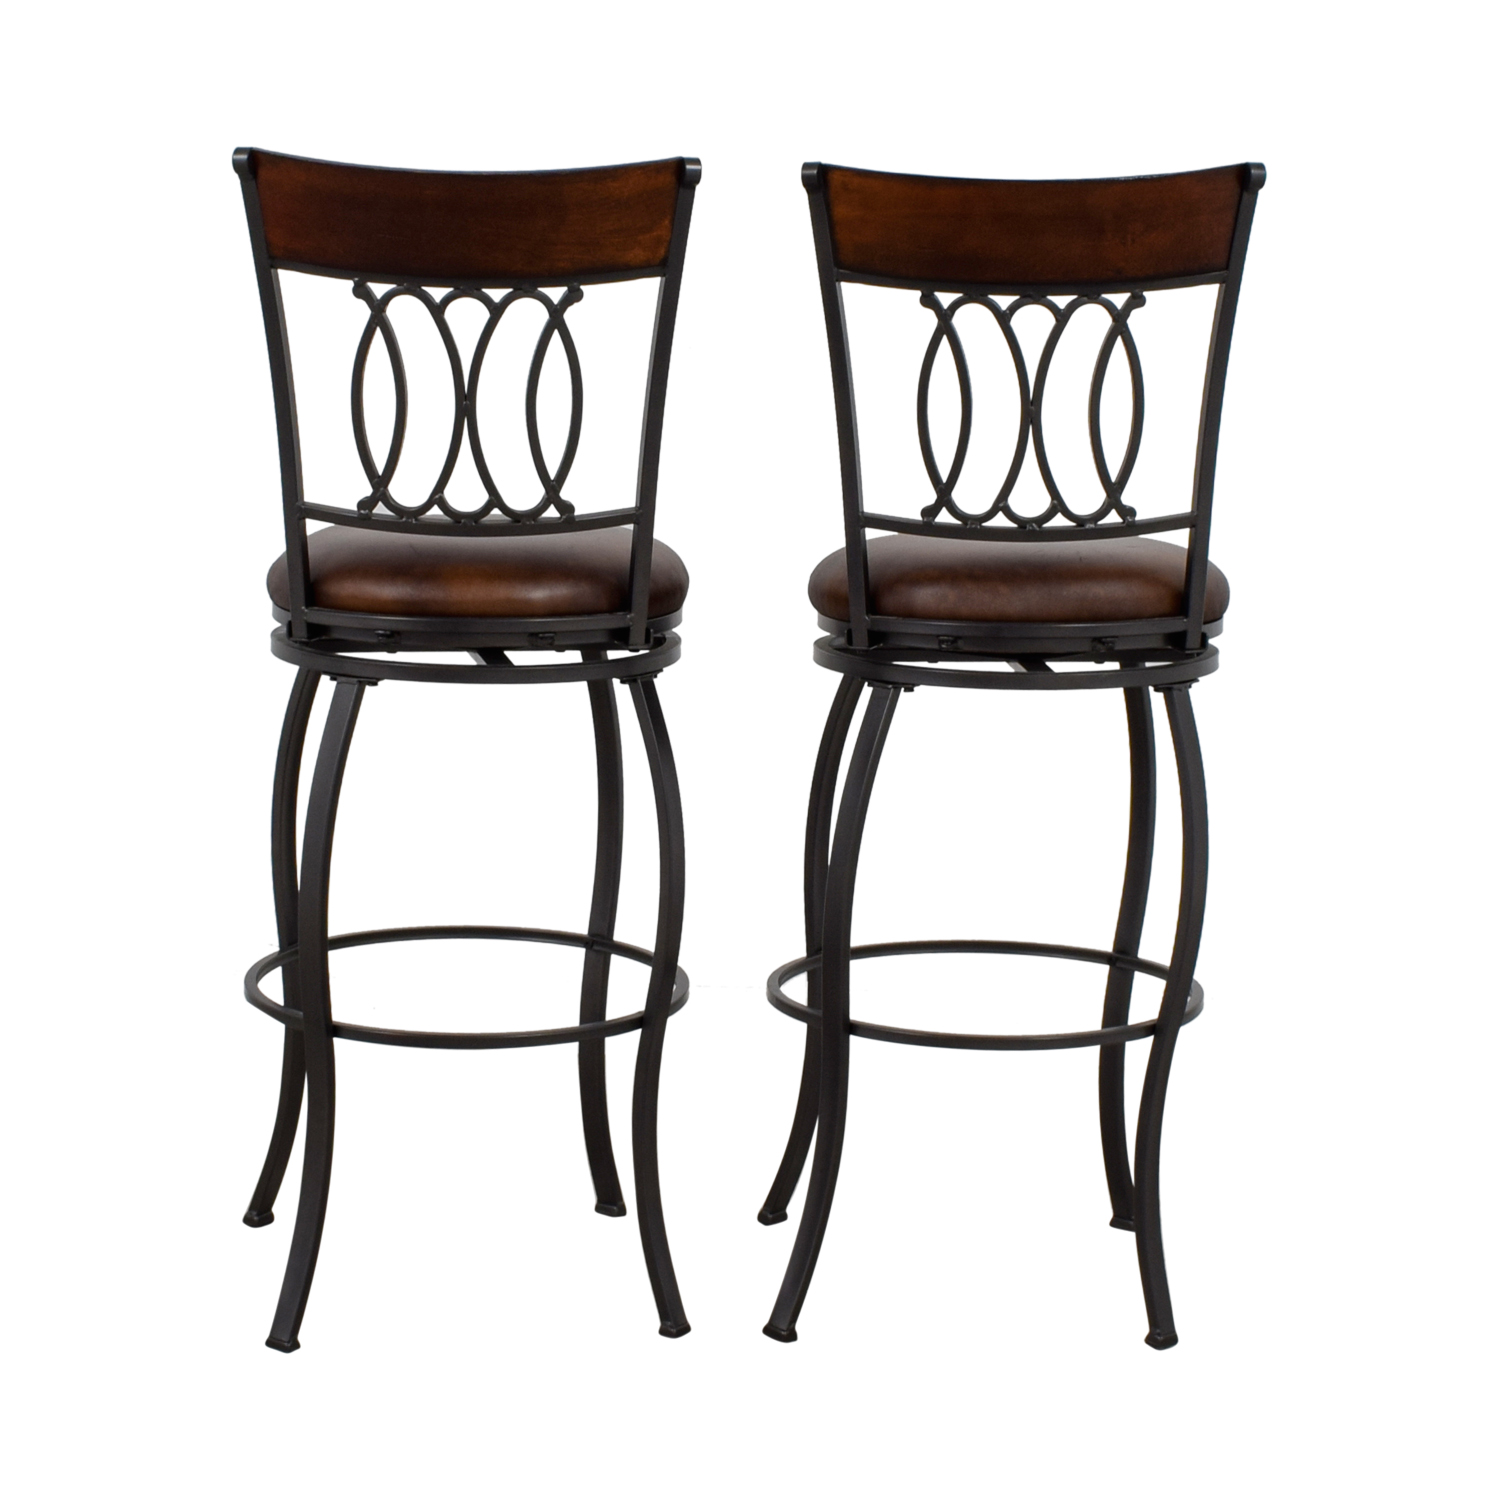 Bobs Furniture Bobs Furniture Brown Swivel Bar Stools on sale